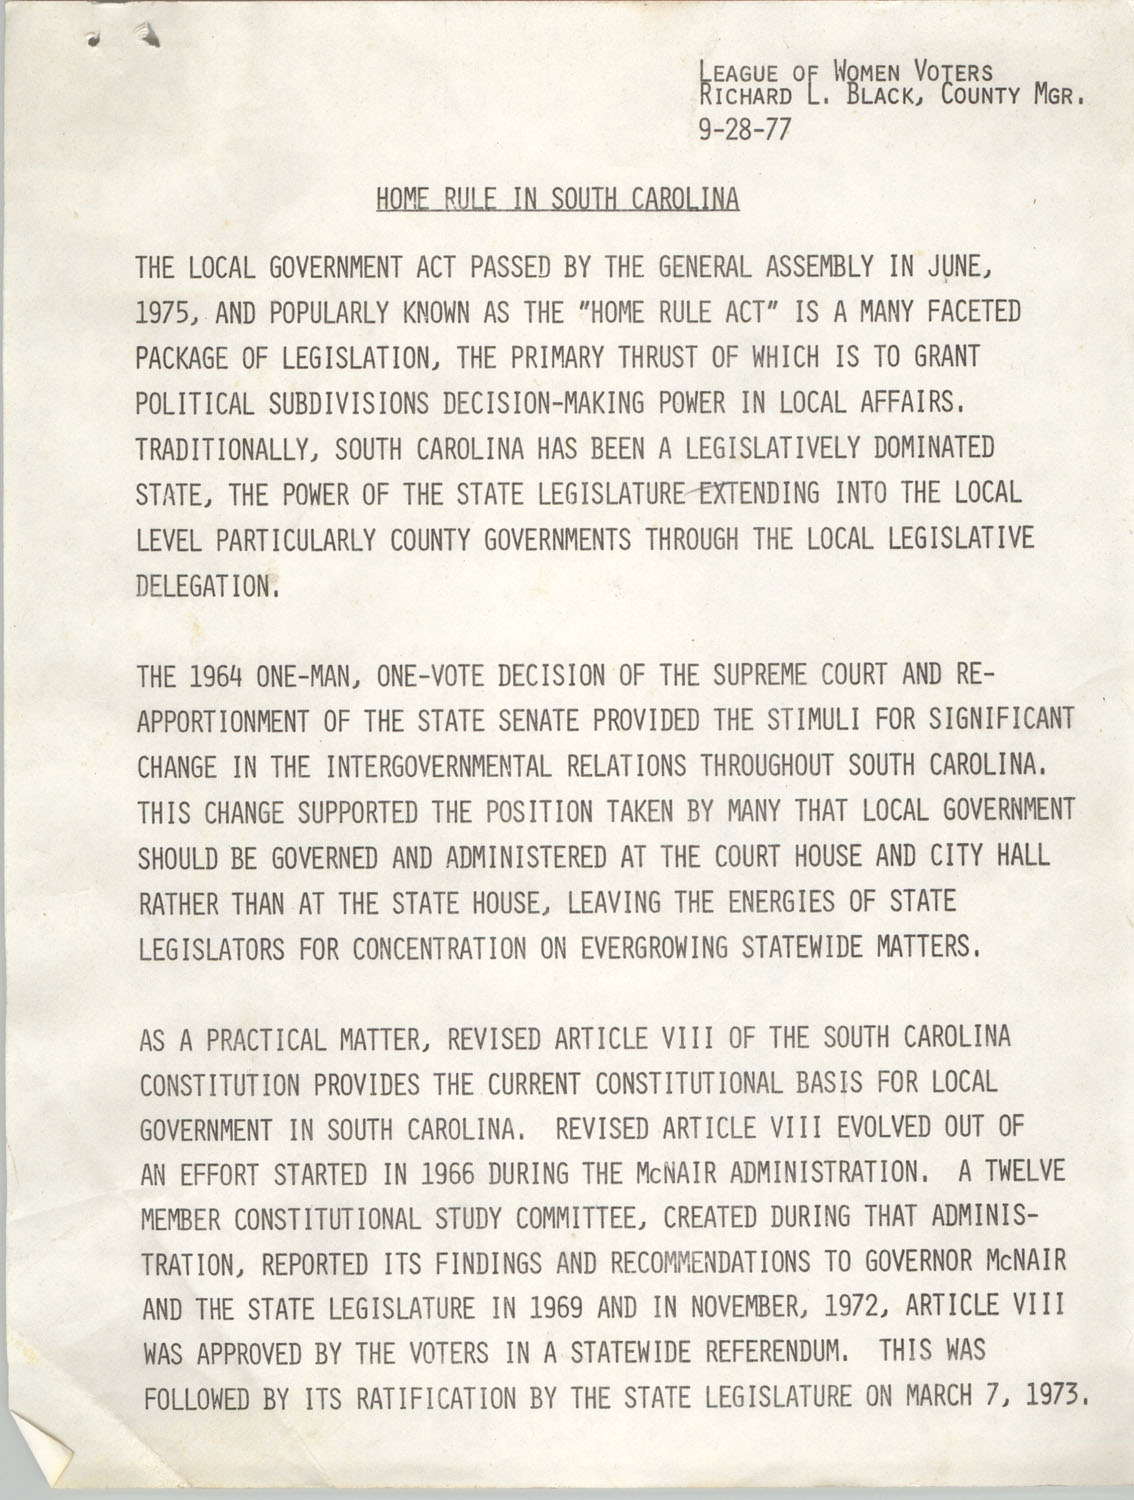 Home Rule In South Carolina, September 28, 1977, Page 1